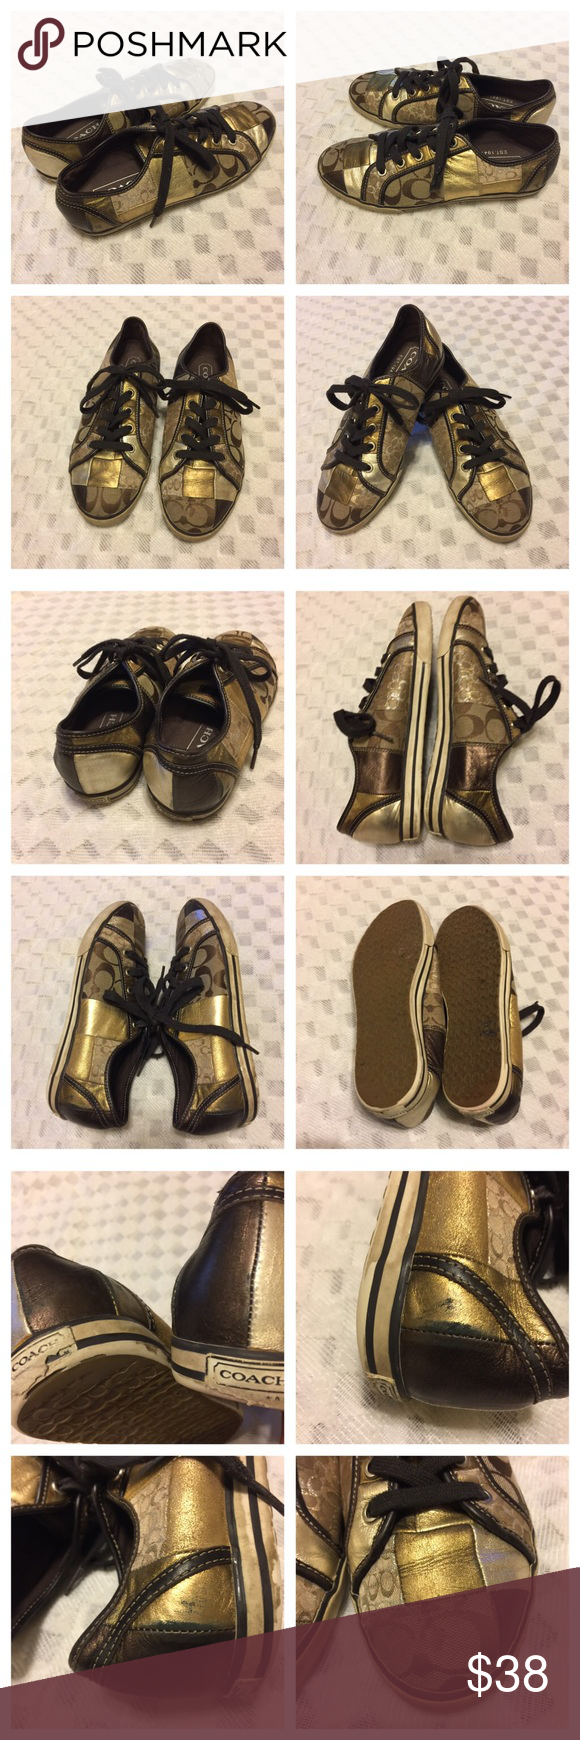 Authentic Coach Sneakers for women Authentic Coach 👟 for women  - Brow/Gold color, size 8.5M with very clean interior. Only had little shaved heels at back and dark marks from normal wear and tear as shown in photo #3. Otherwise, pair is in good condition. No trades. Coach Shoes Sneakers